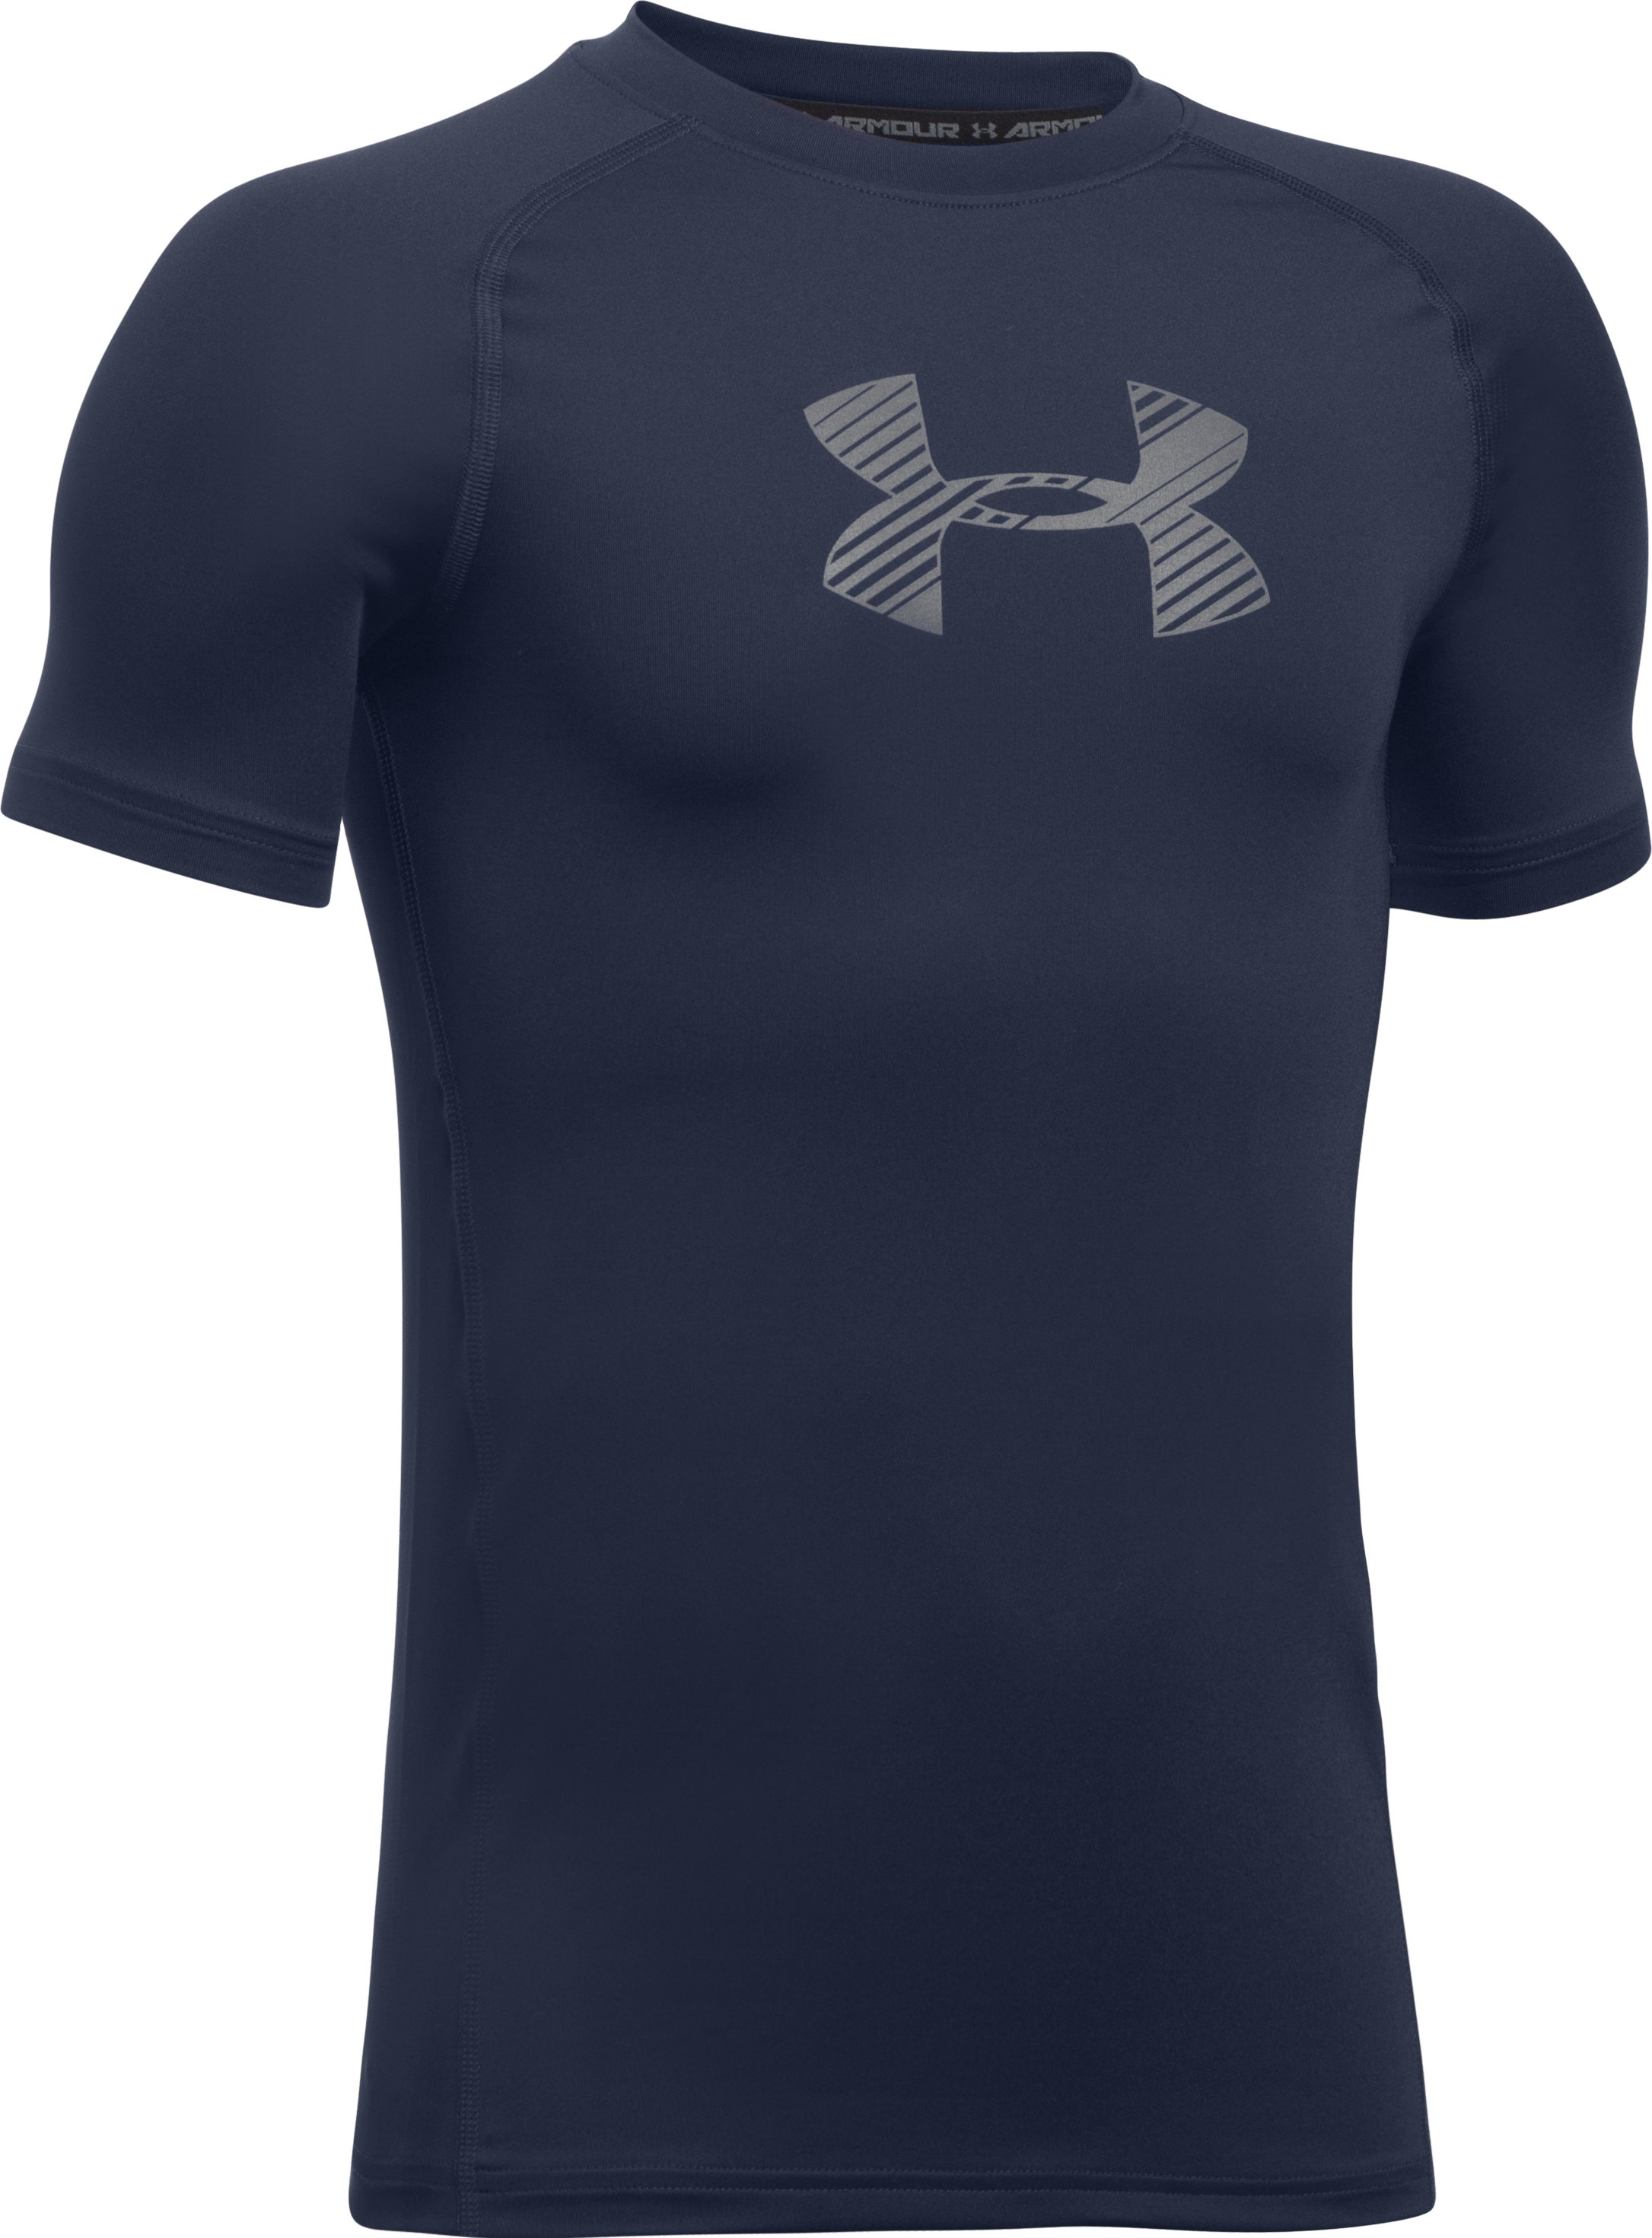 Boys' HeatGear® Armour Short Sleeve, Midnight Navy, undefined